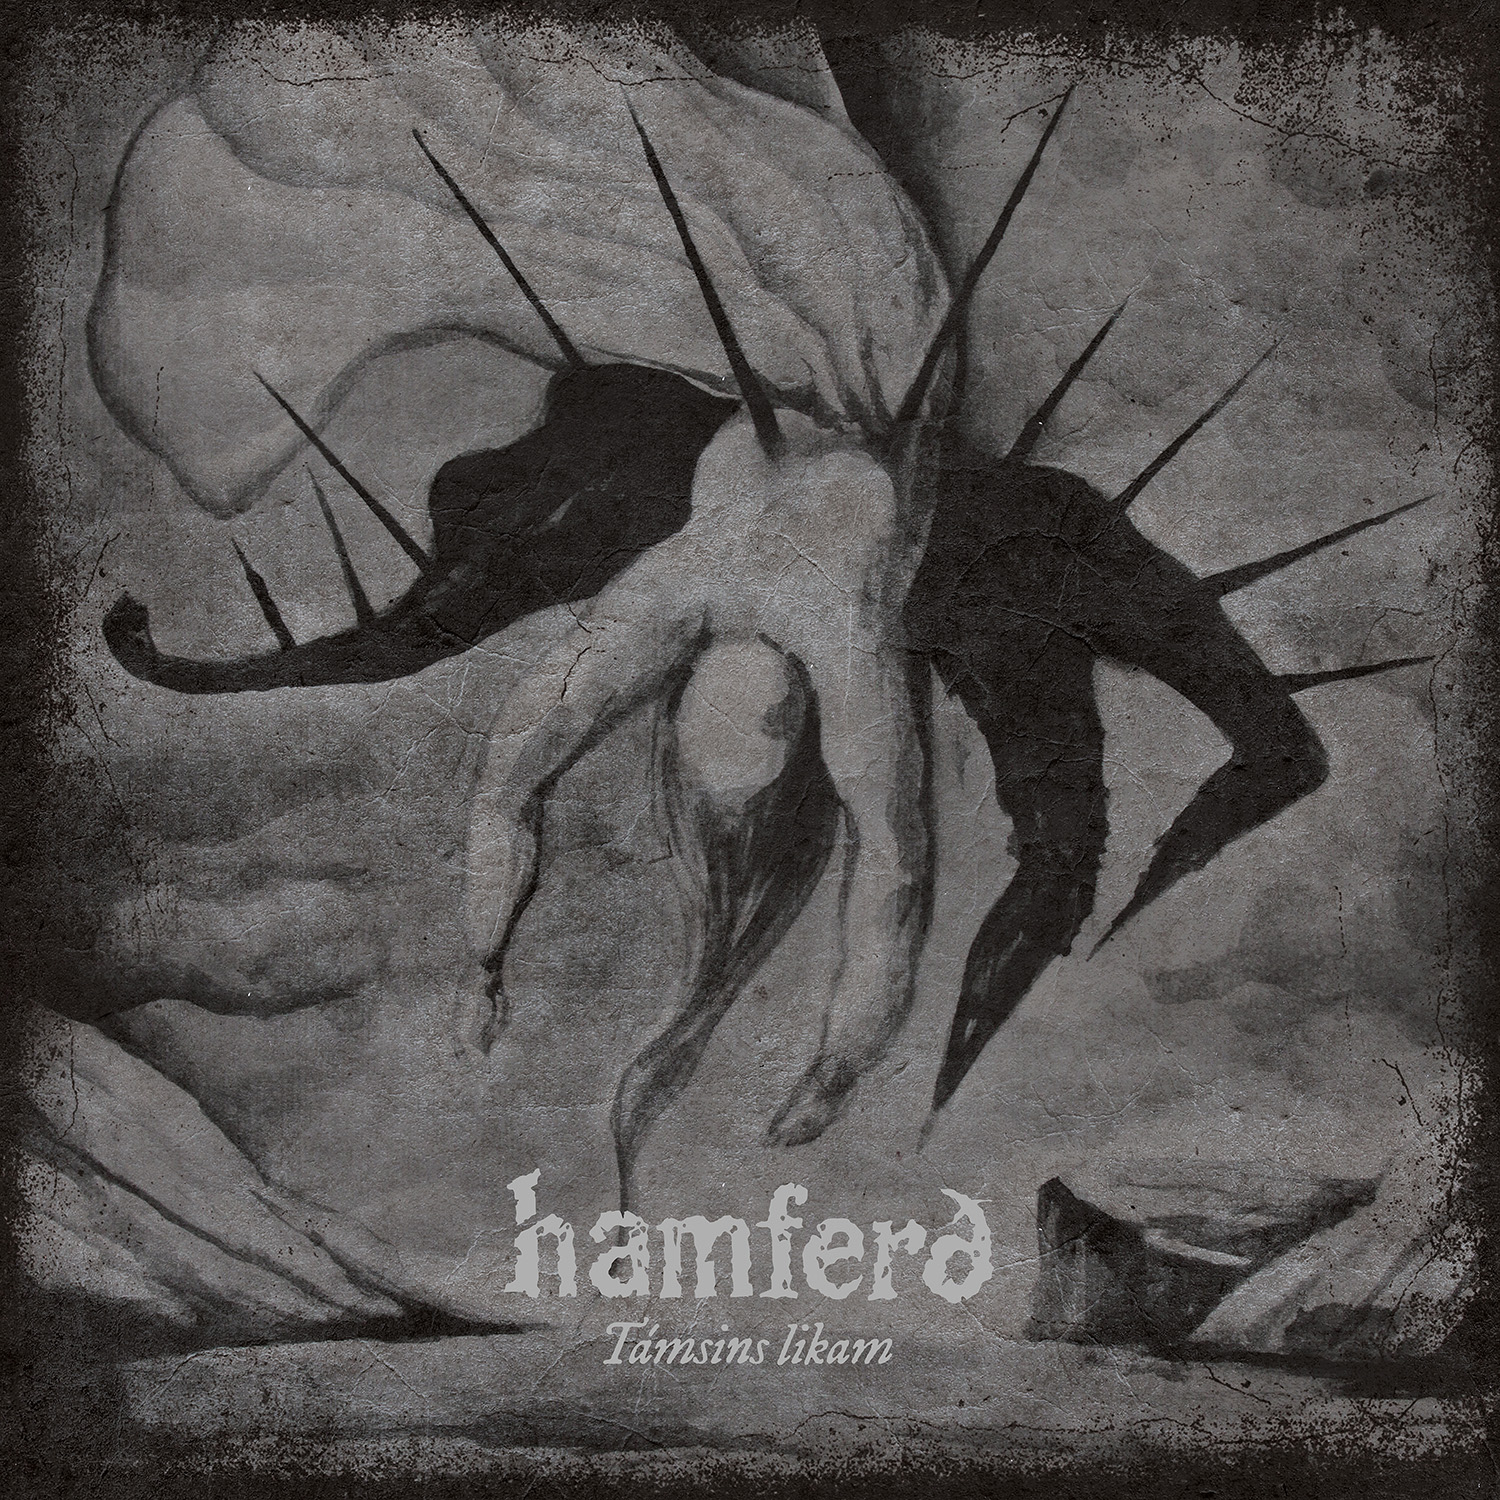 19. Hamfer∂ - Támsins Likam - Hamfer∂ is the Faroese term for sailors lost at sea and Támsins Likam, their sophomore effort, sees the doomsters' sound sink into one evocative of their name - ghastly, unsettling, and at times, crushing. The album is an impressive effort to meld melodic-tinged doom metal with folkish tendencies and a dissonant, yet progressive edge.